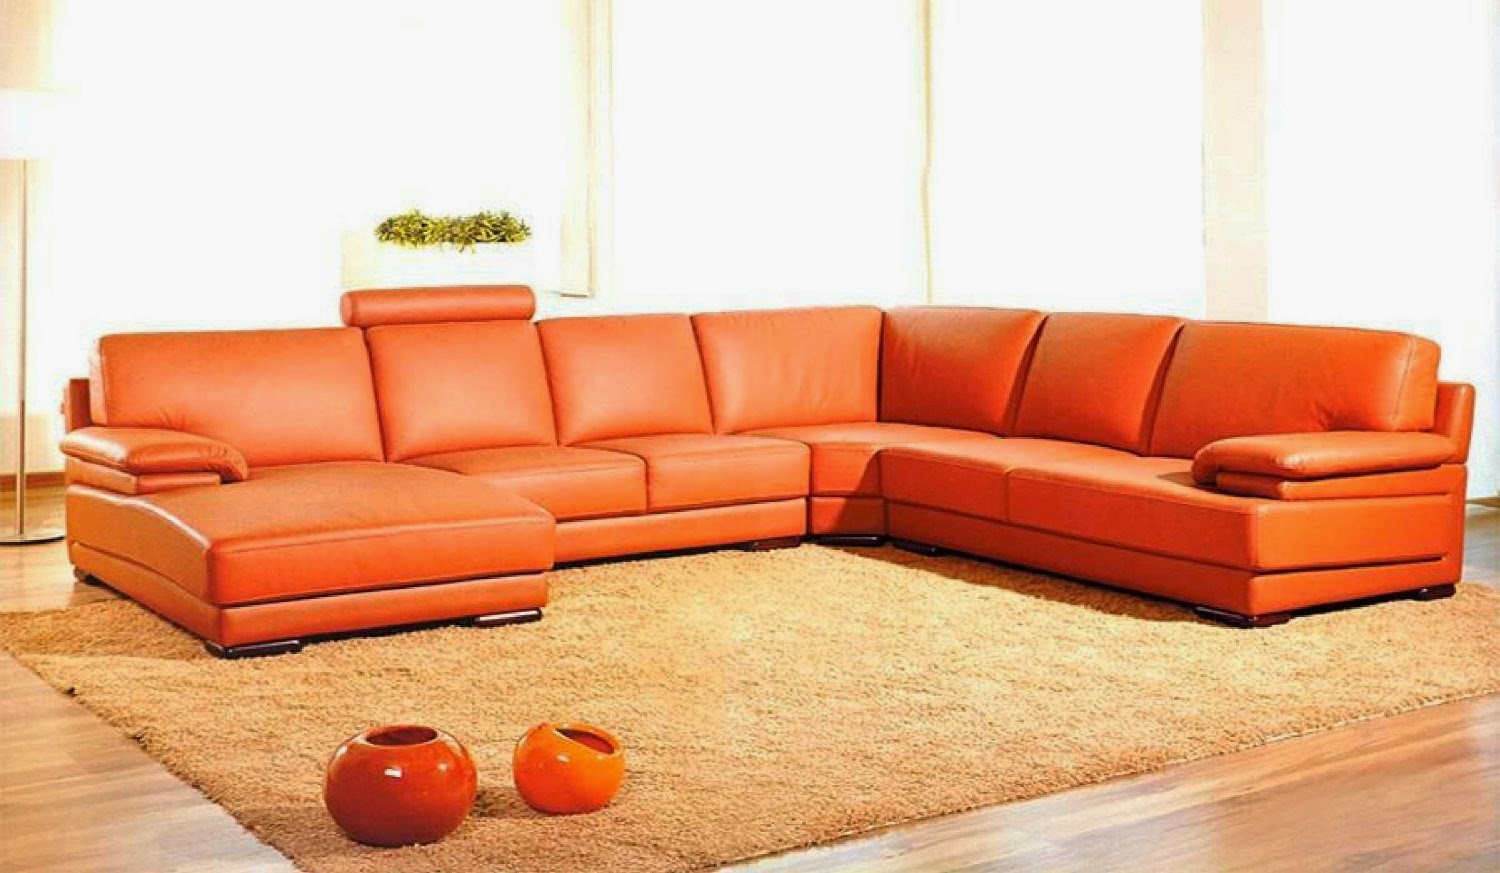 Orange Couch Orange Sectional Couch